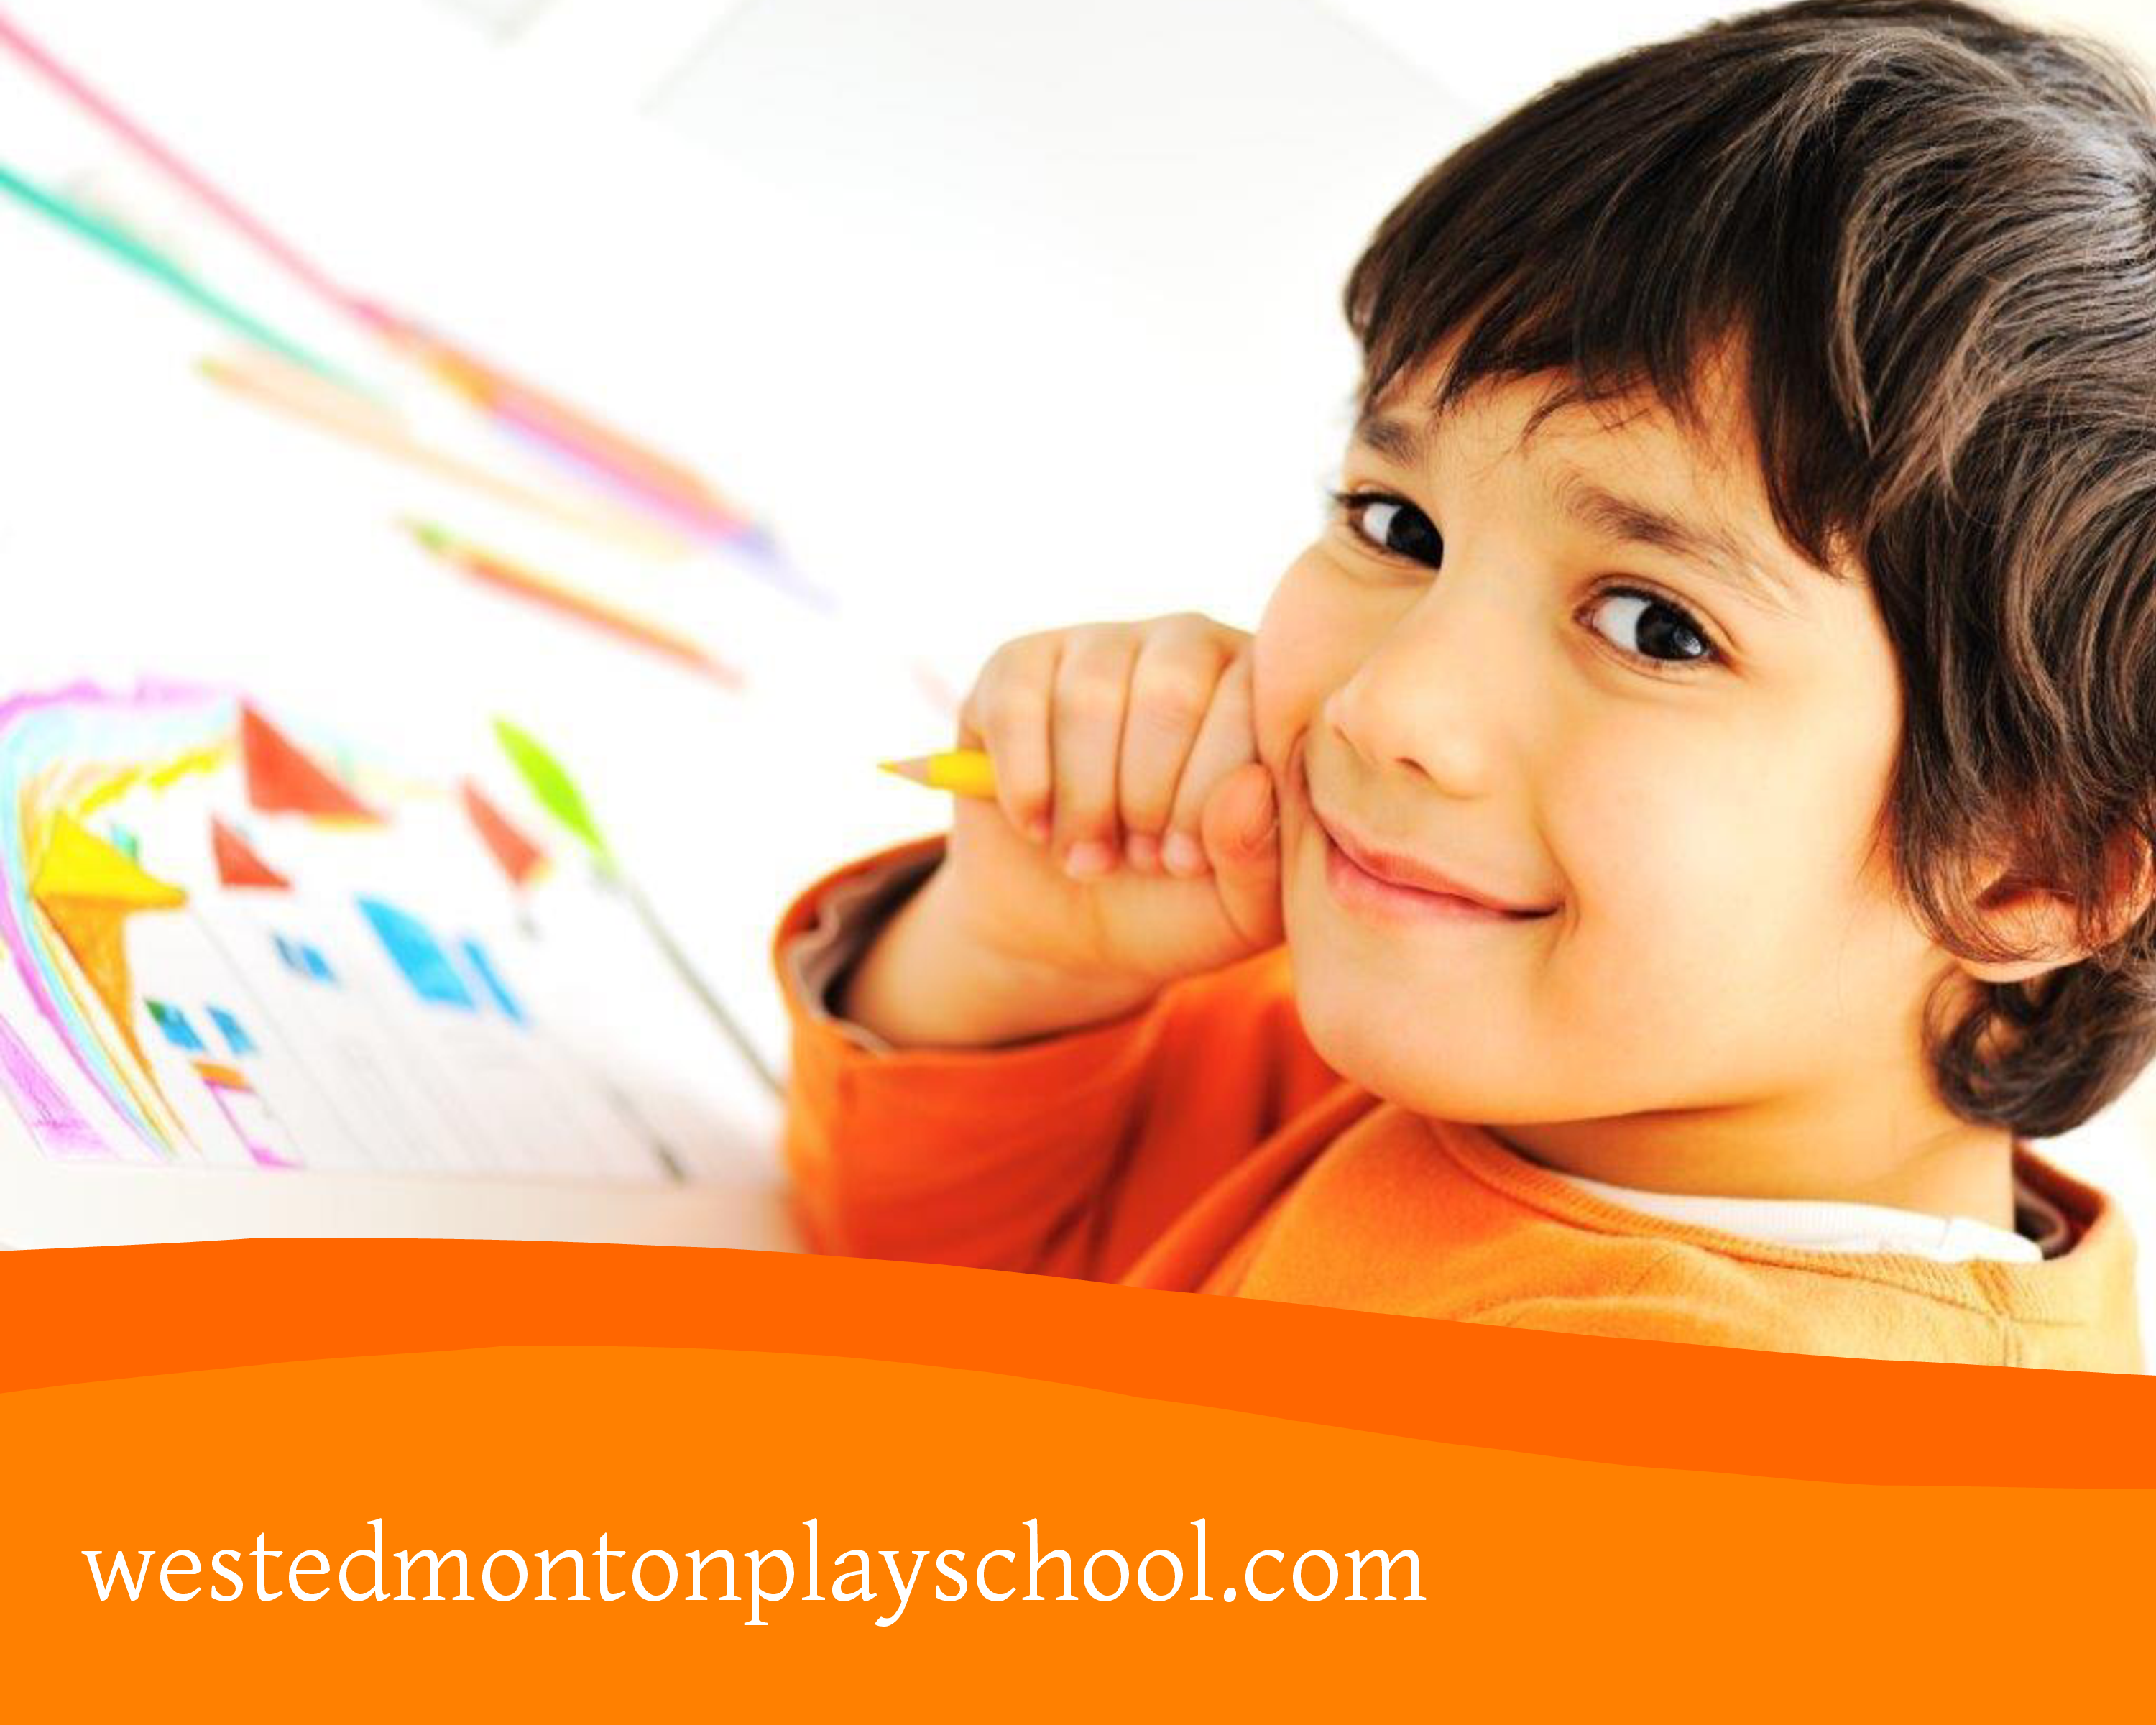 West Edmonton Playschool | Come Learn With Us!